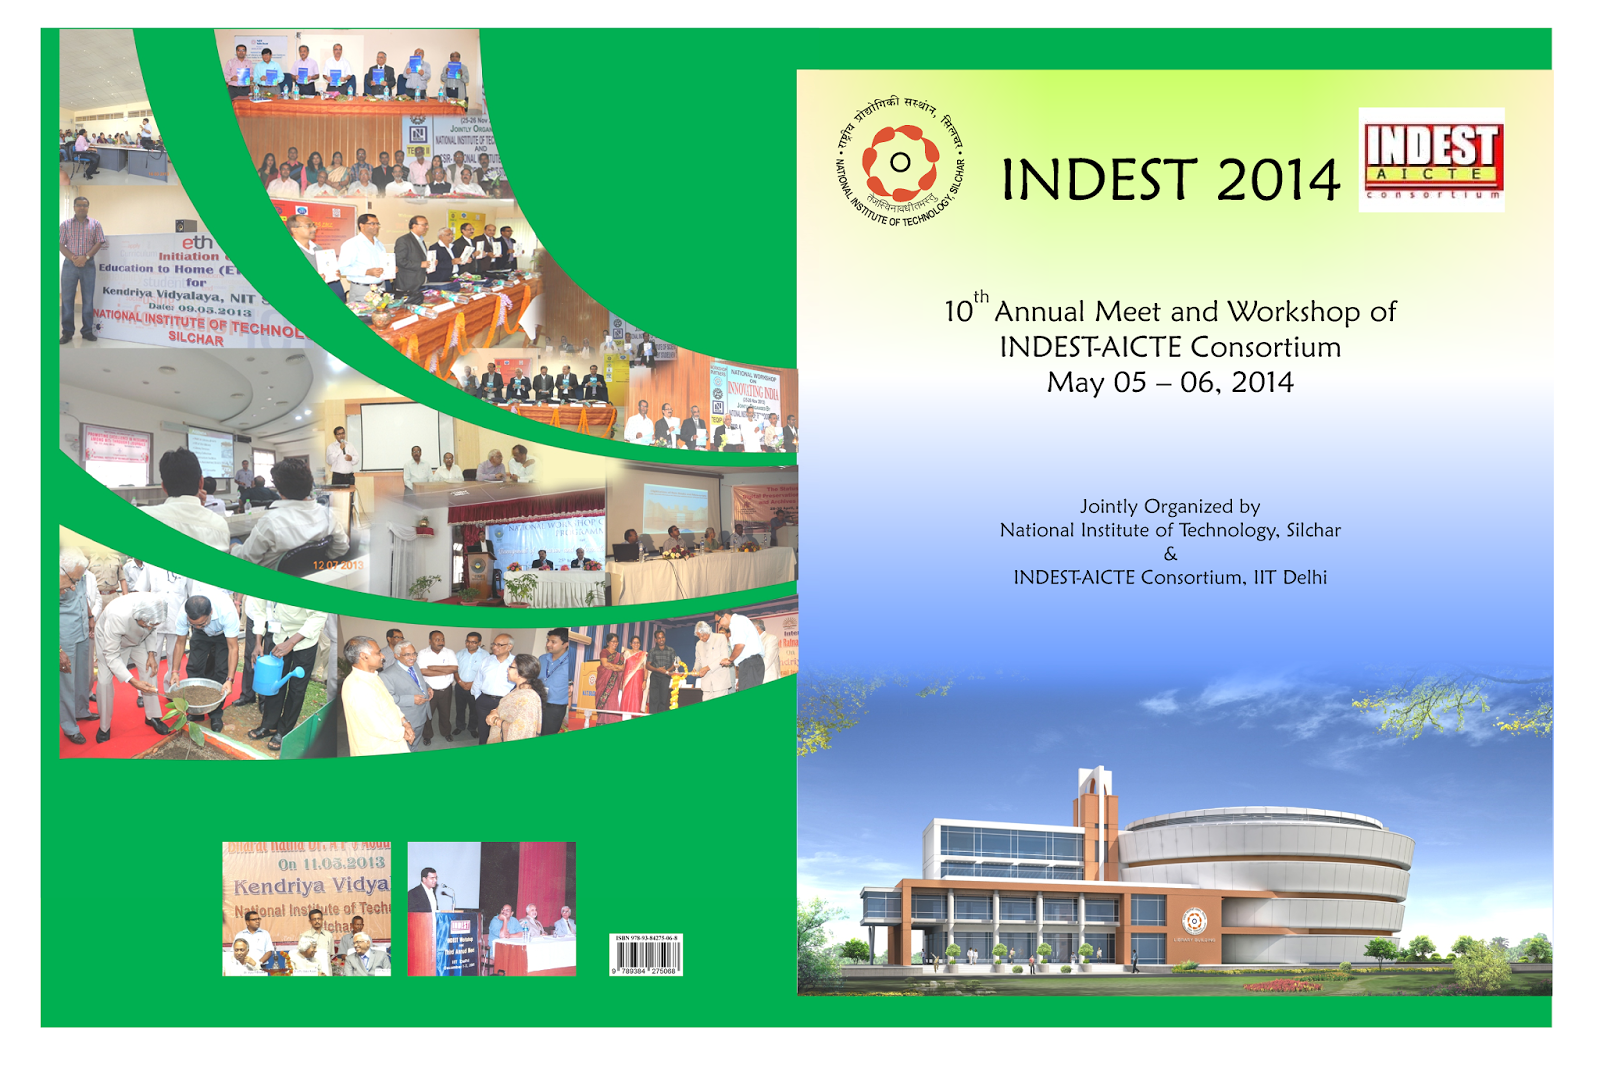 th annual meet and workshop of indest aicte consortium nit cover page of the proceedings of indest 2014